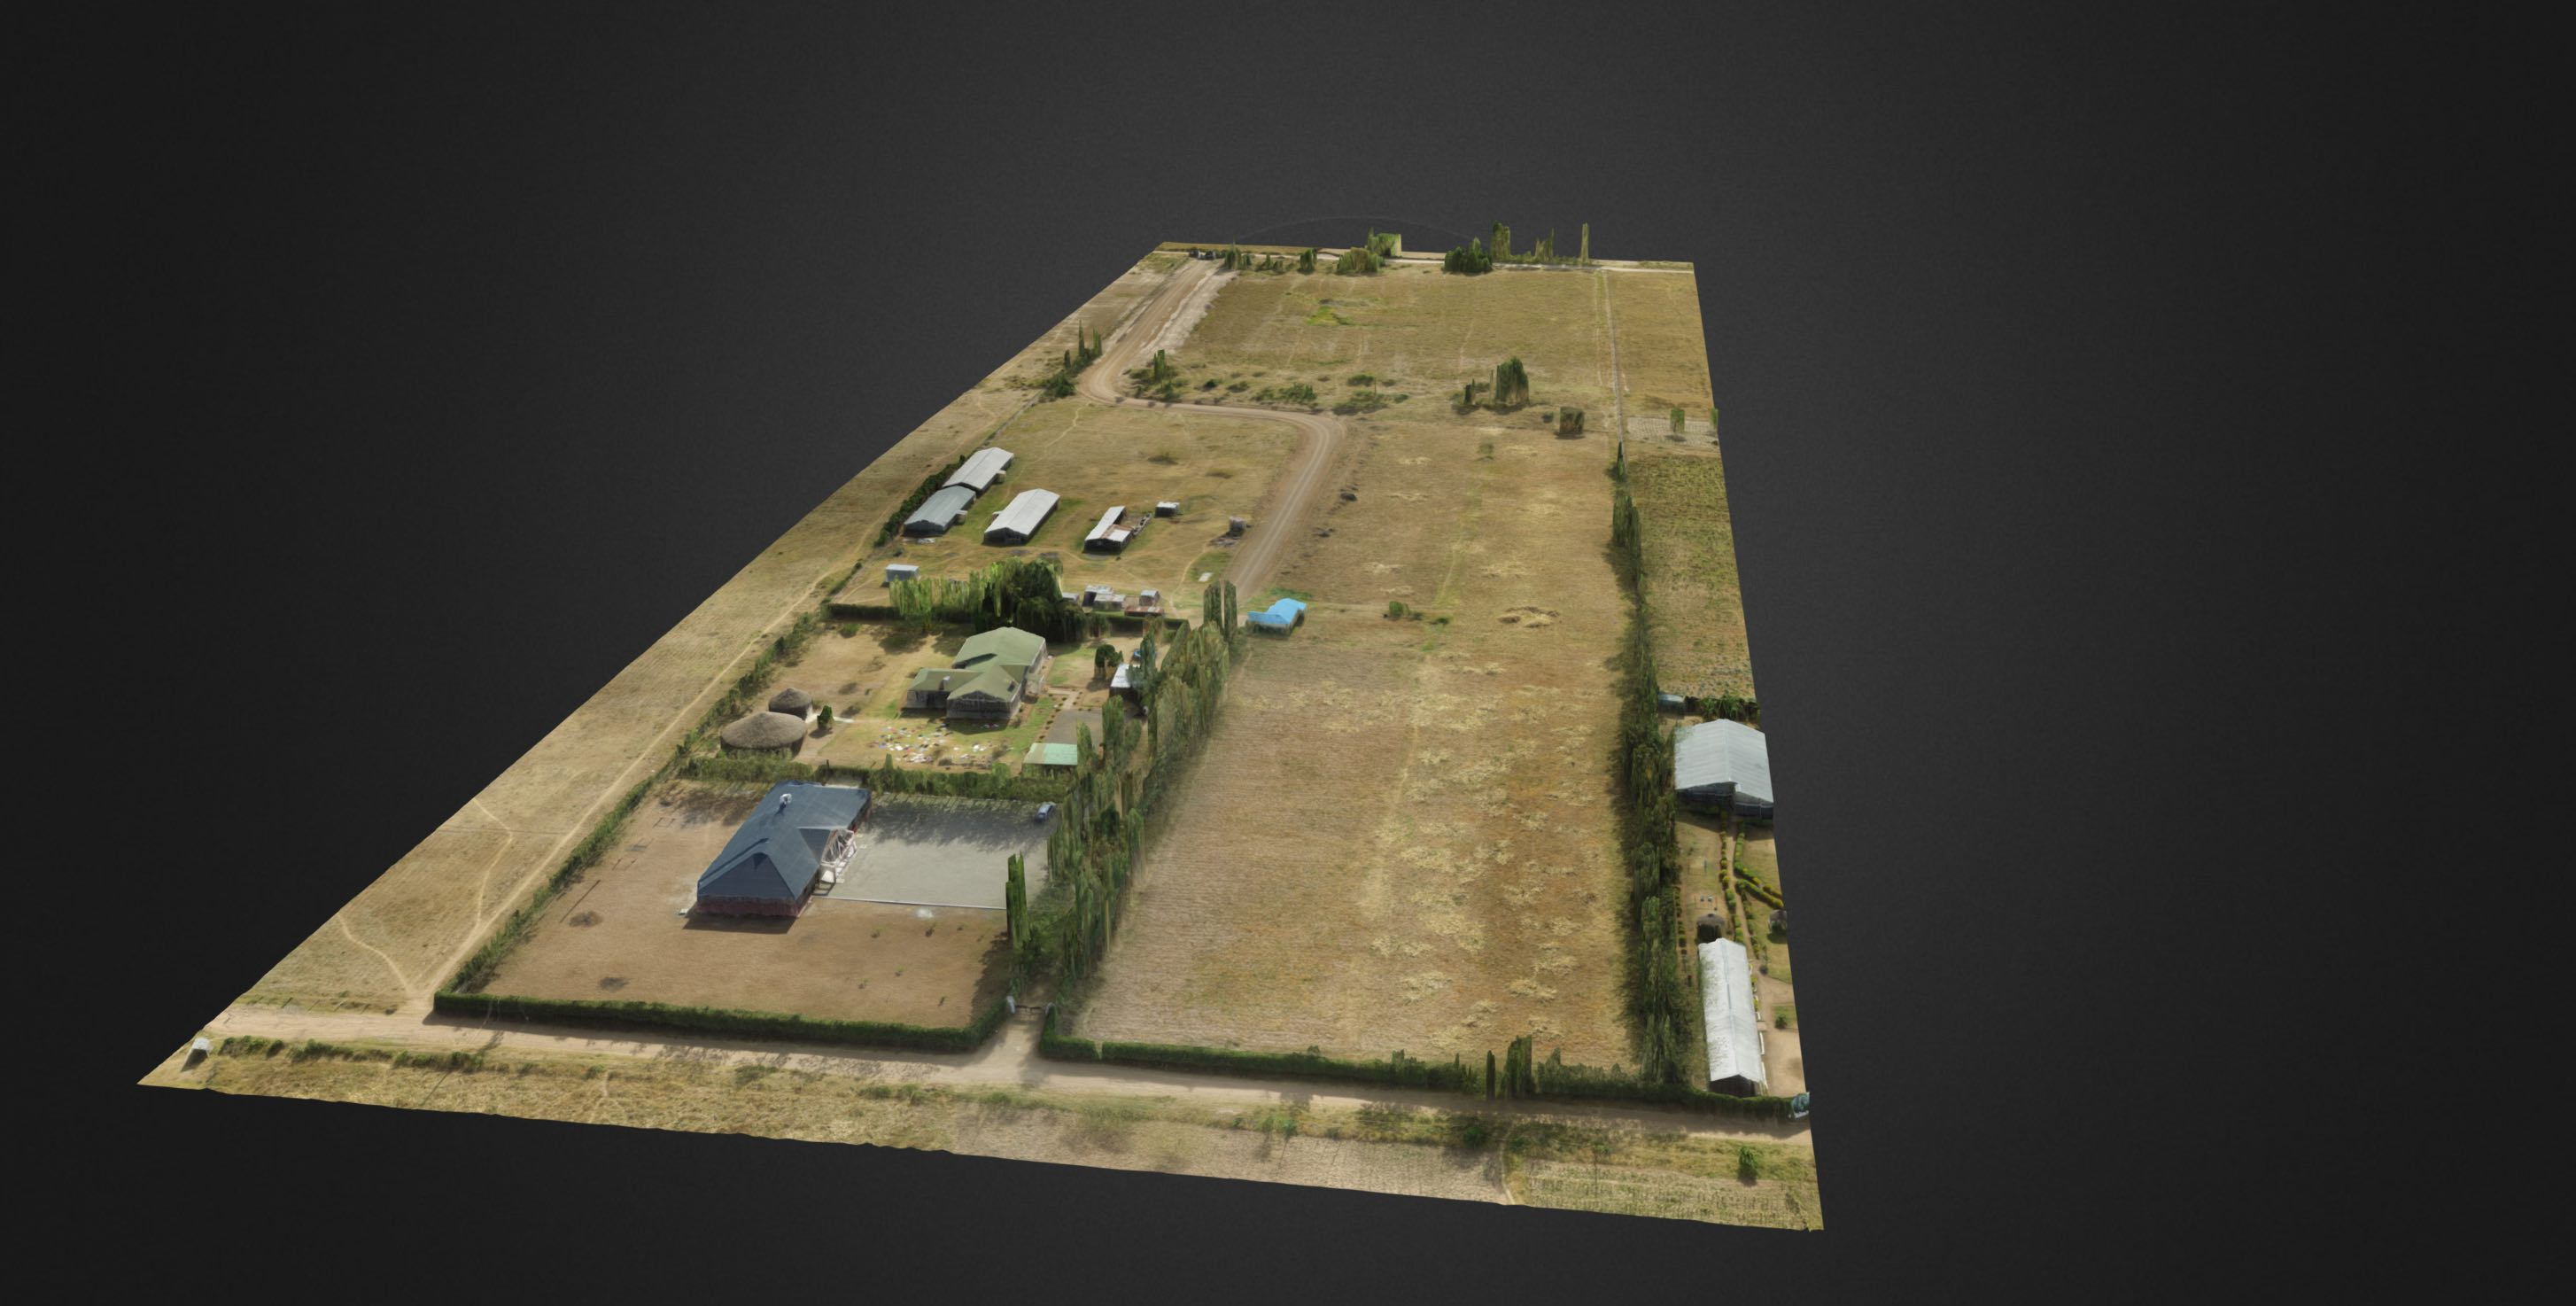 3d orthomoasic drone map